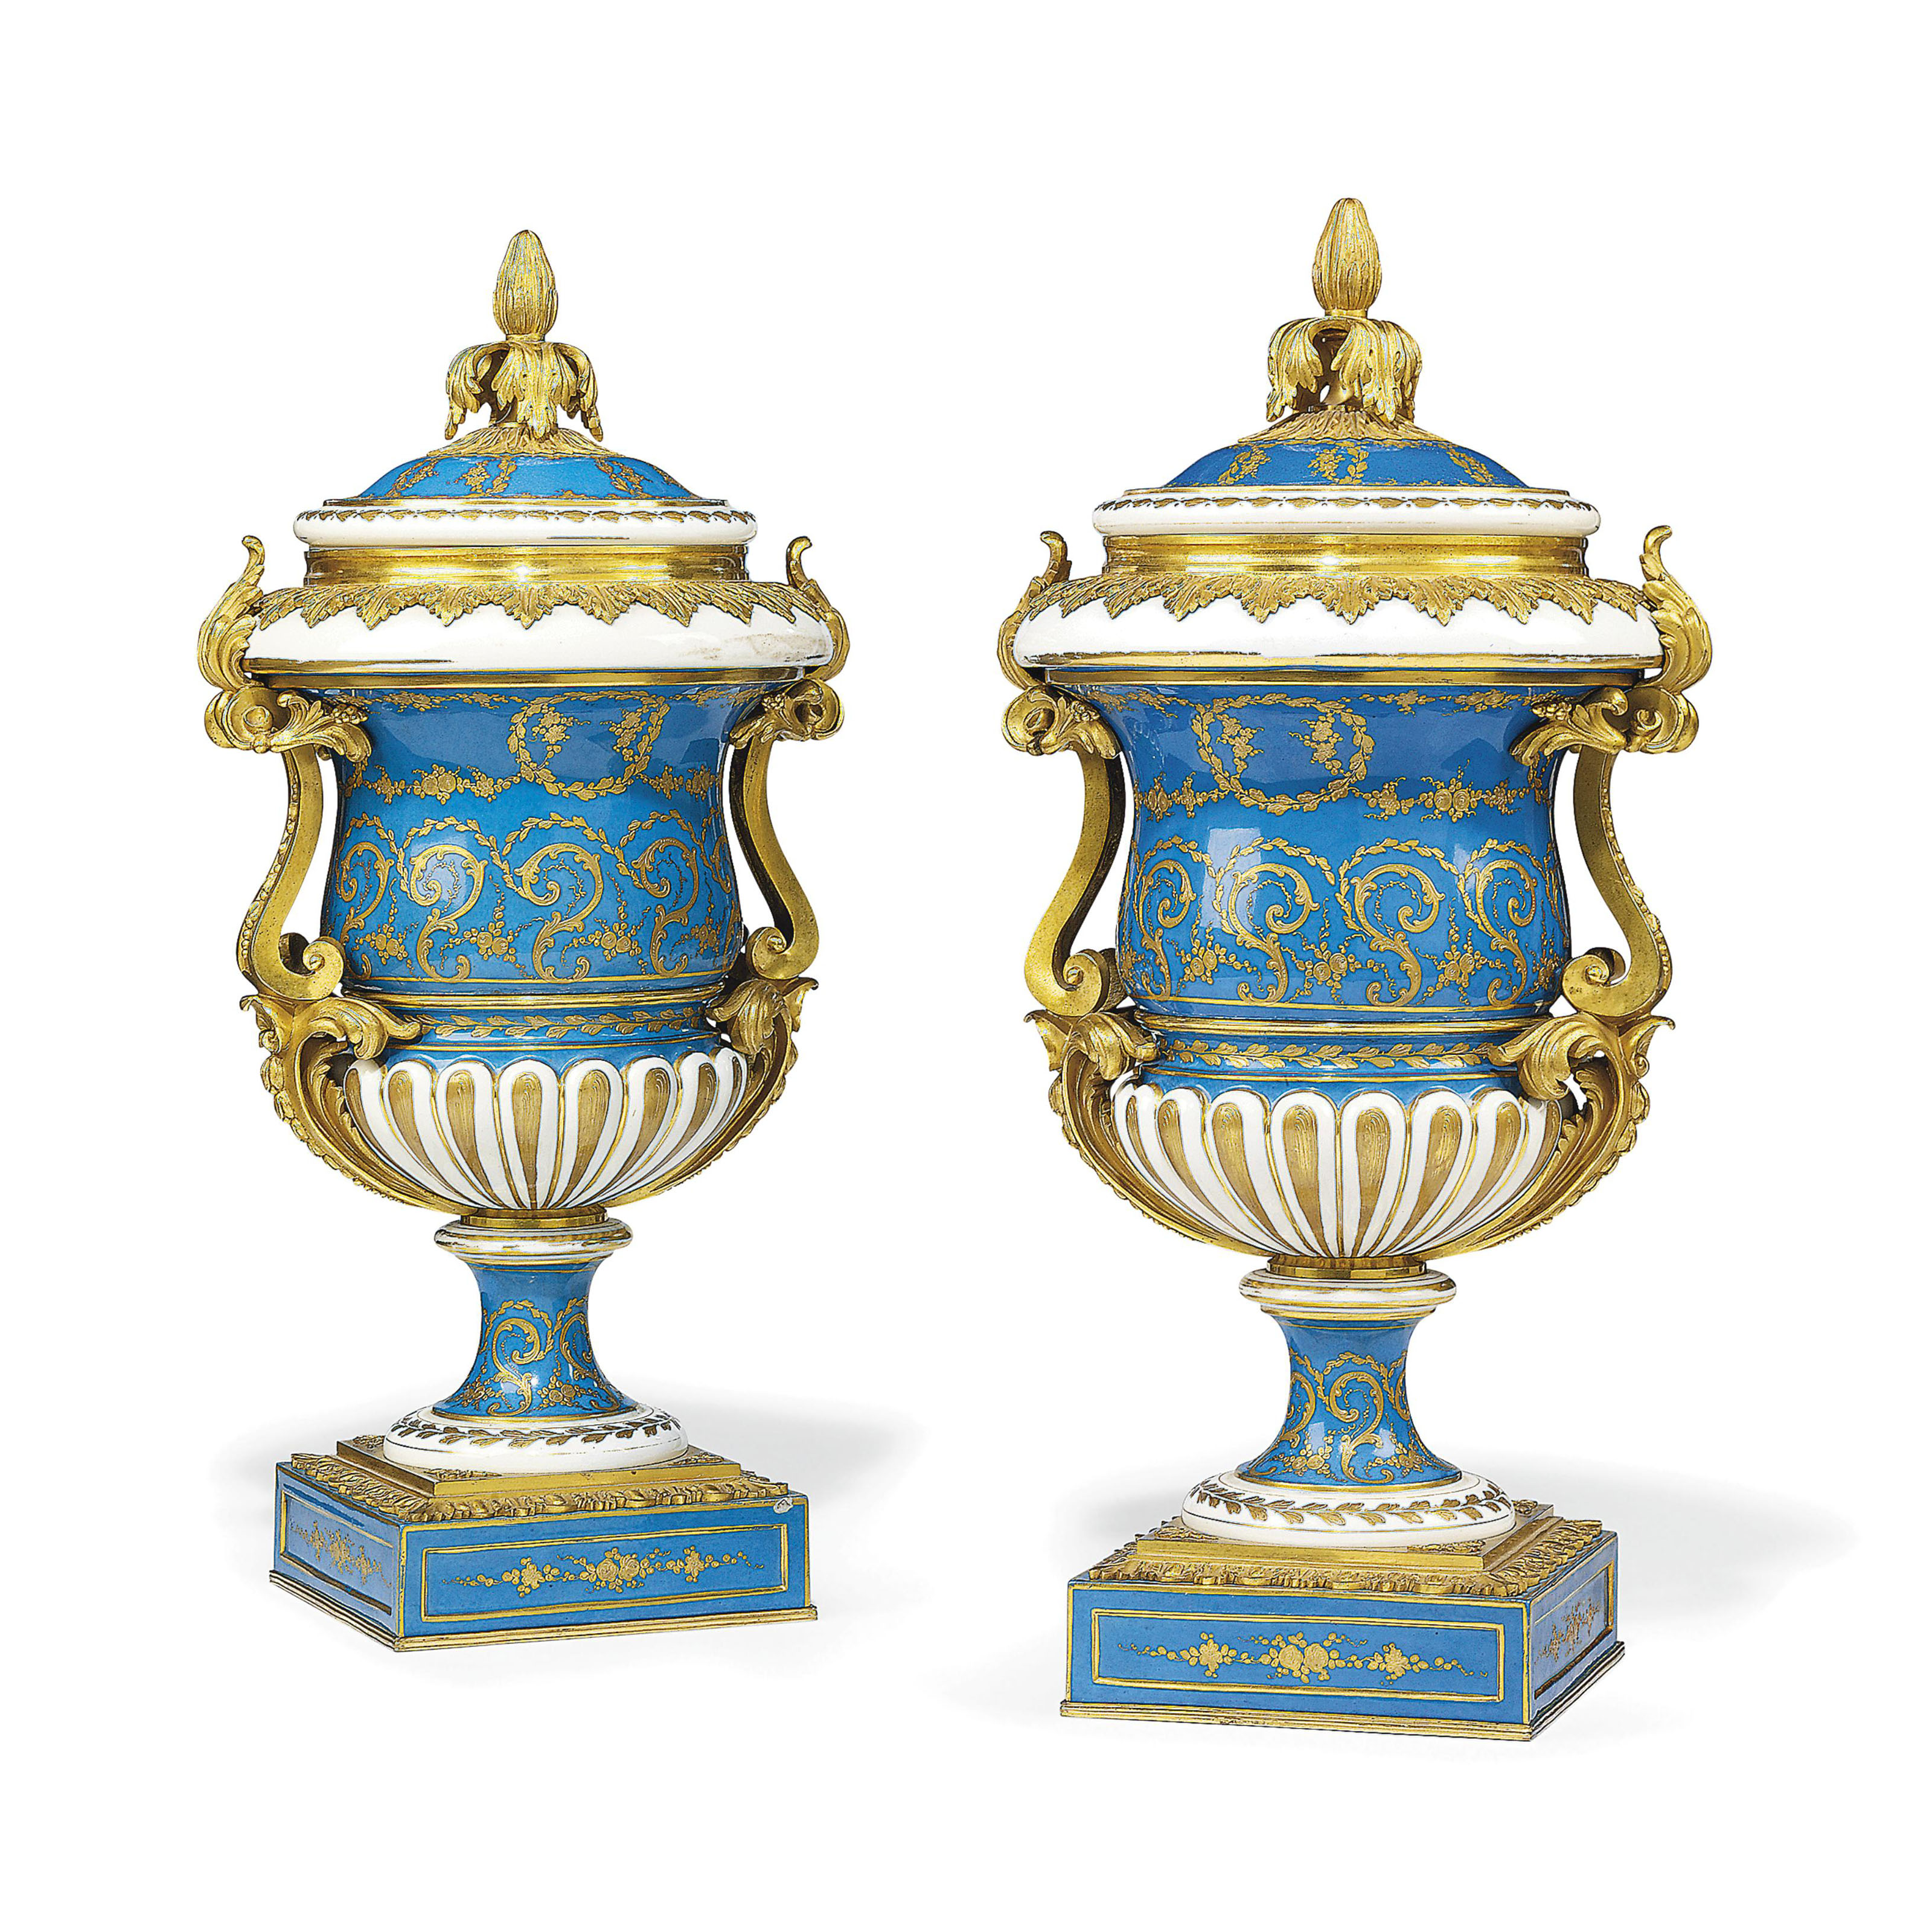 A PAIR OF FRENCH ORMOLU-MOUNTED SEVRES STYLE TURQUOISE GROUND VASES AND COVERS